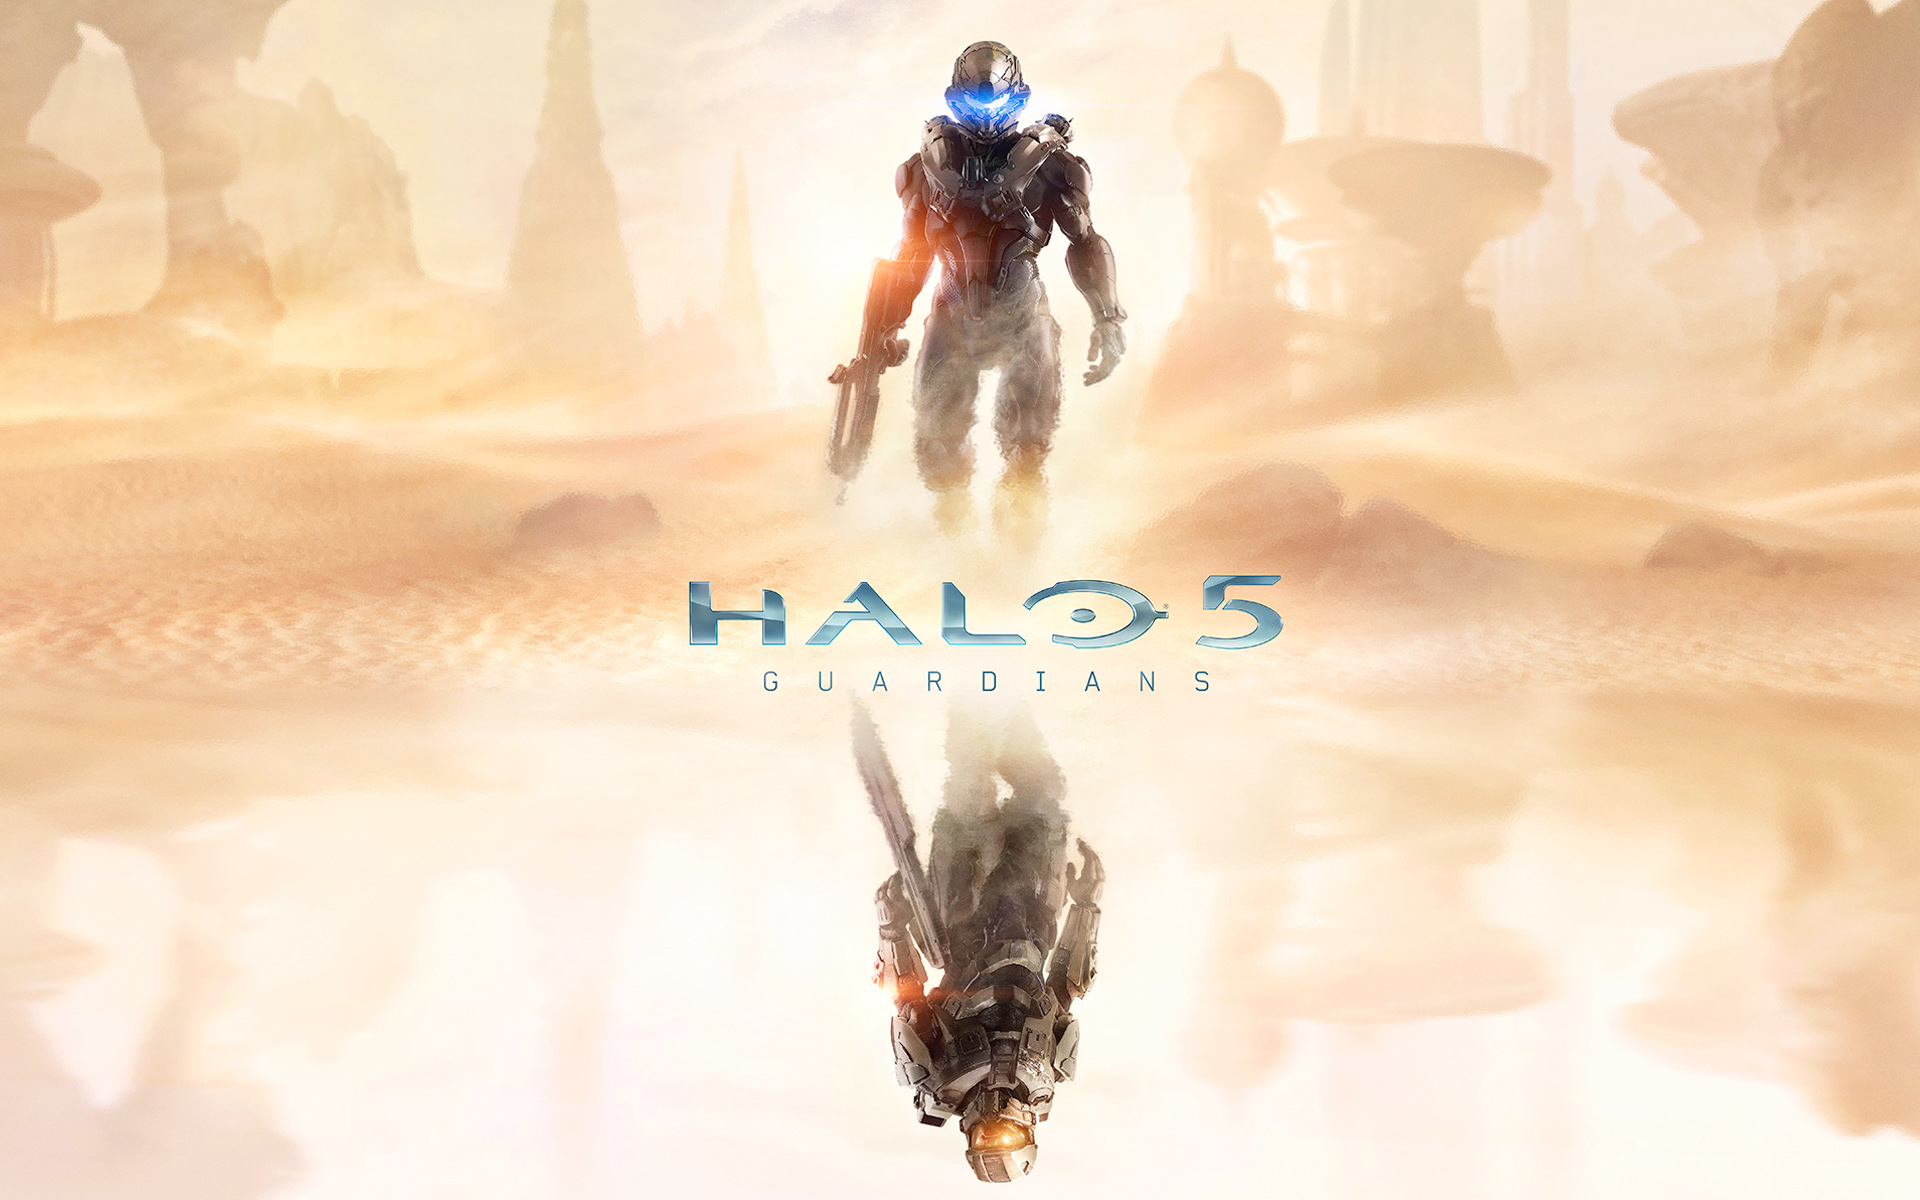 HD Wallpapers Halo 5 Guardians 2015 Game